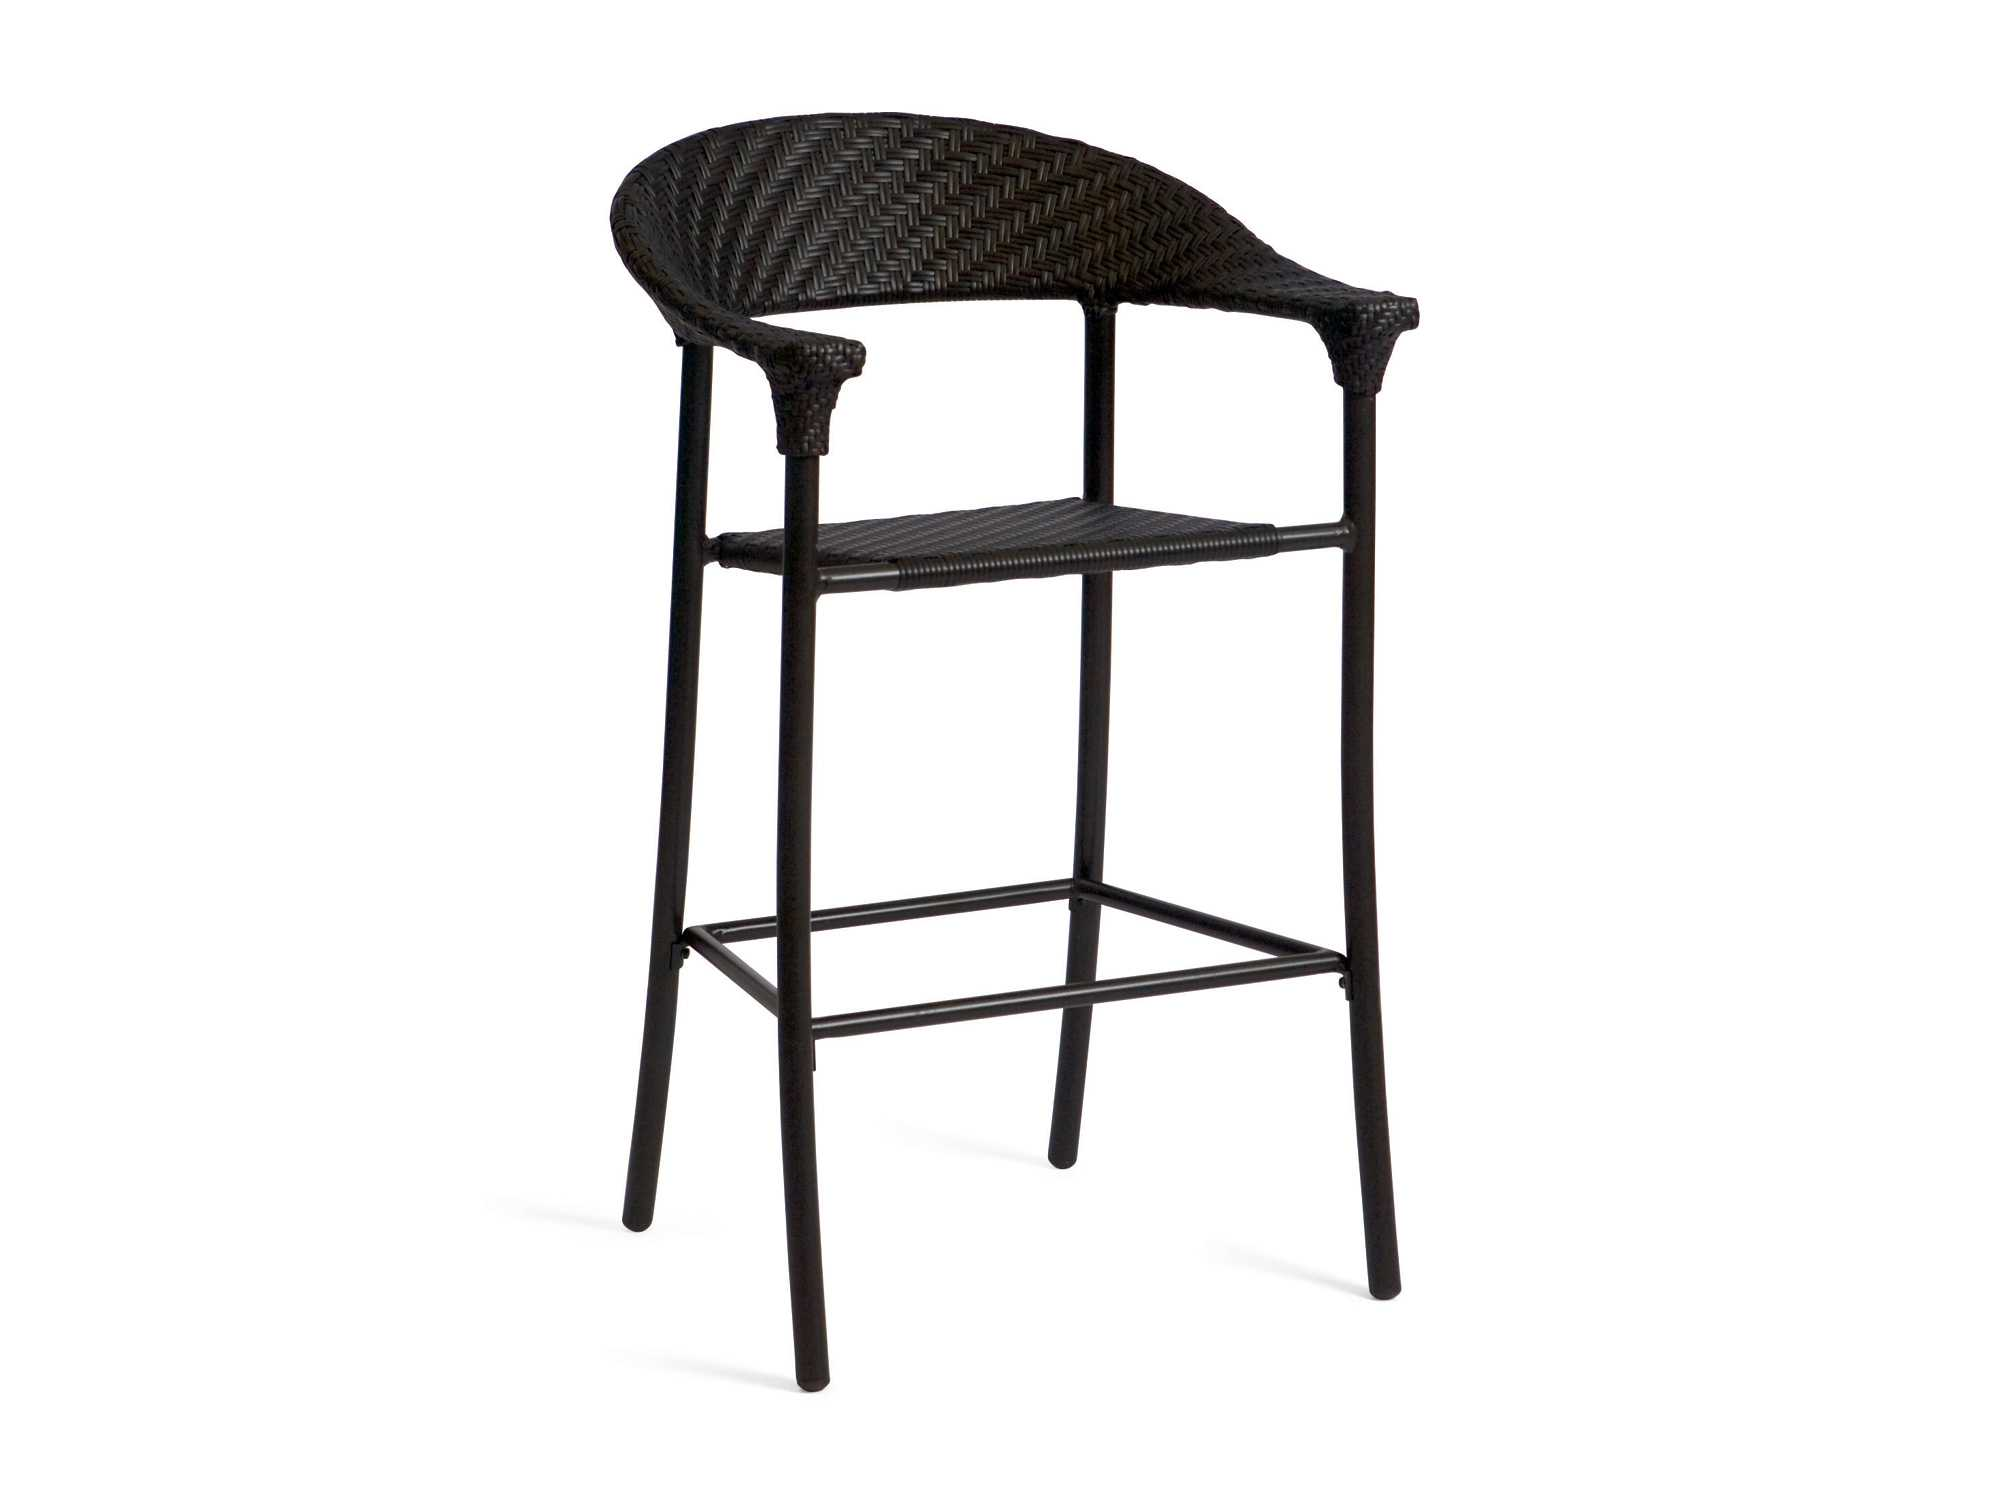 Whitecraft Barlow Wicker Bar Stool 6j0081